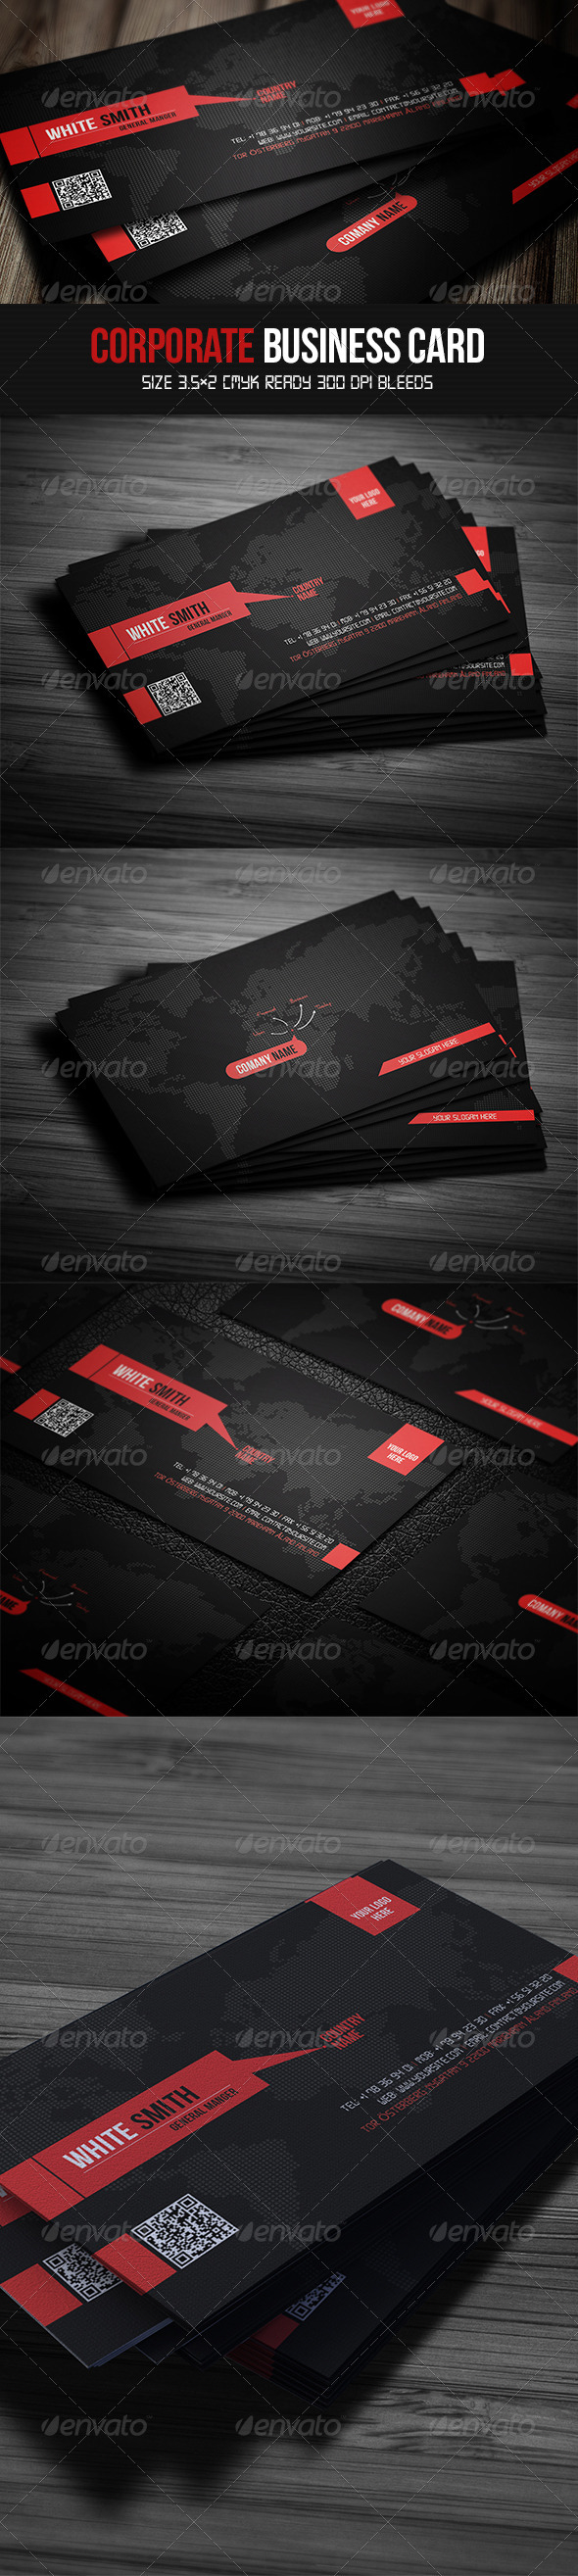 Corporate Business Card by UnicoDesign